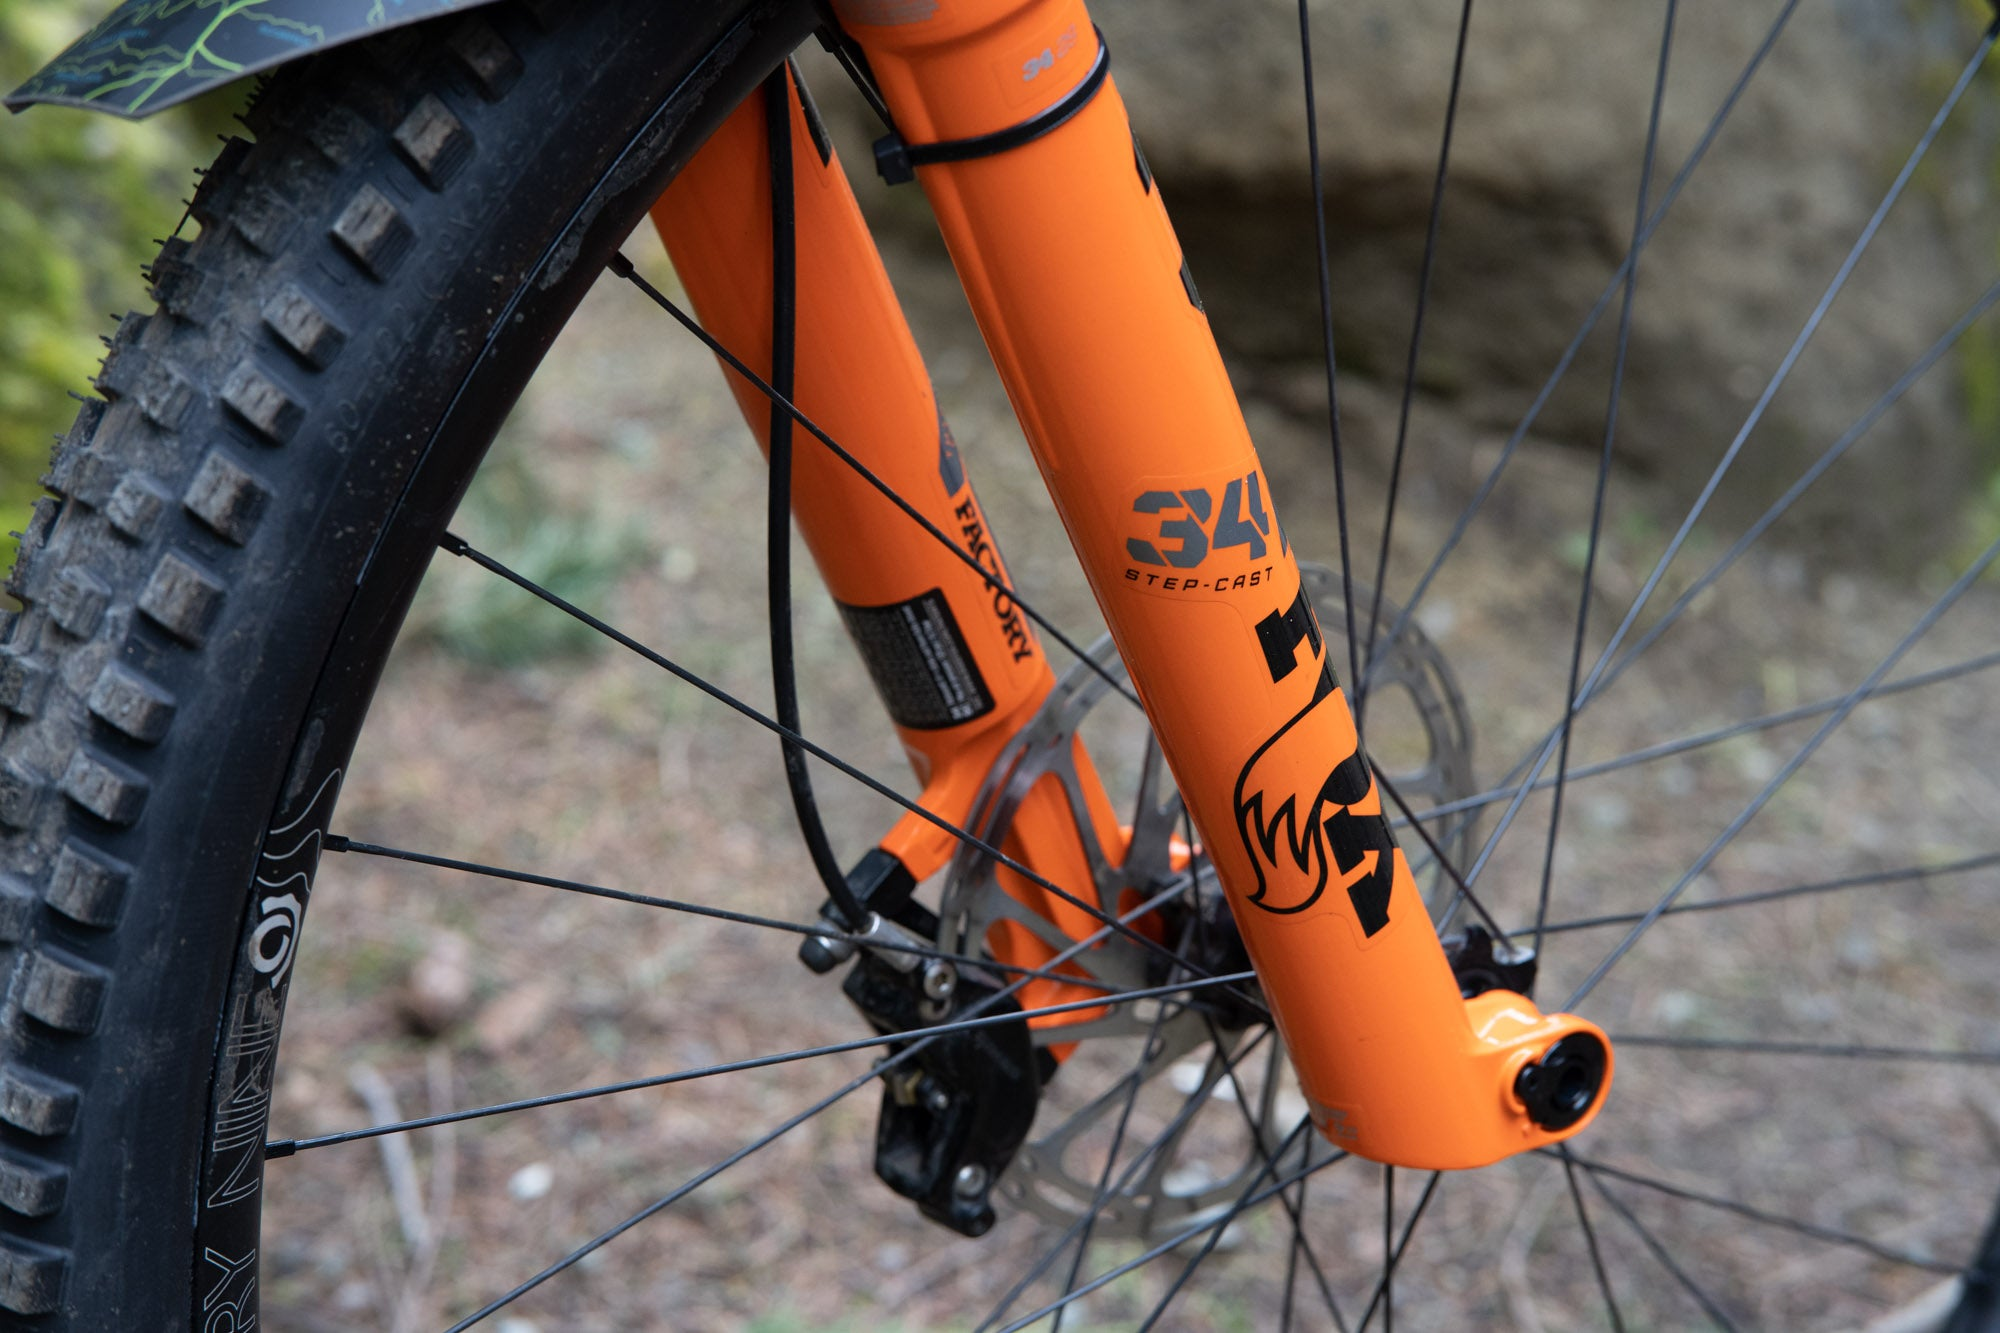 The channels in the back of the fork legs provide added lubrication and air volume.